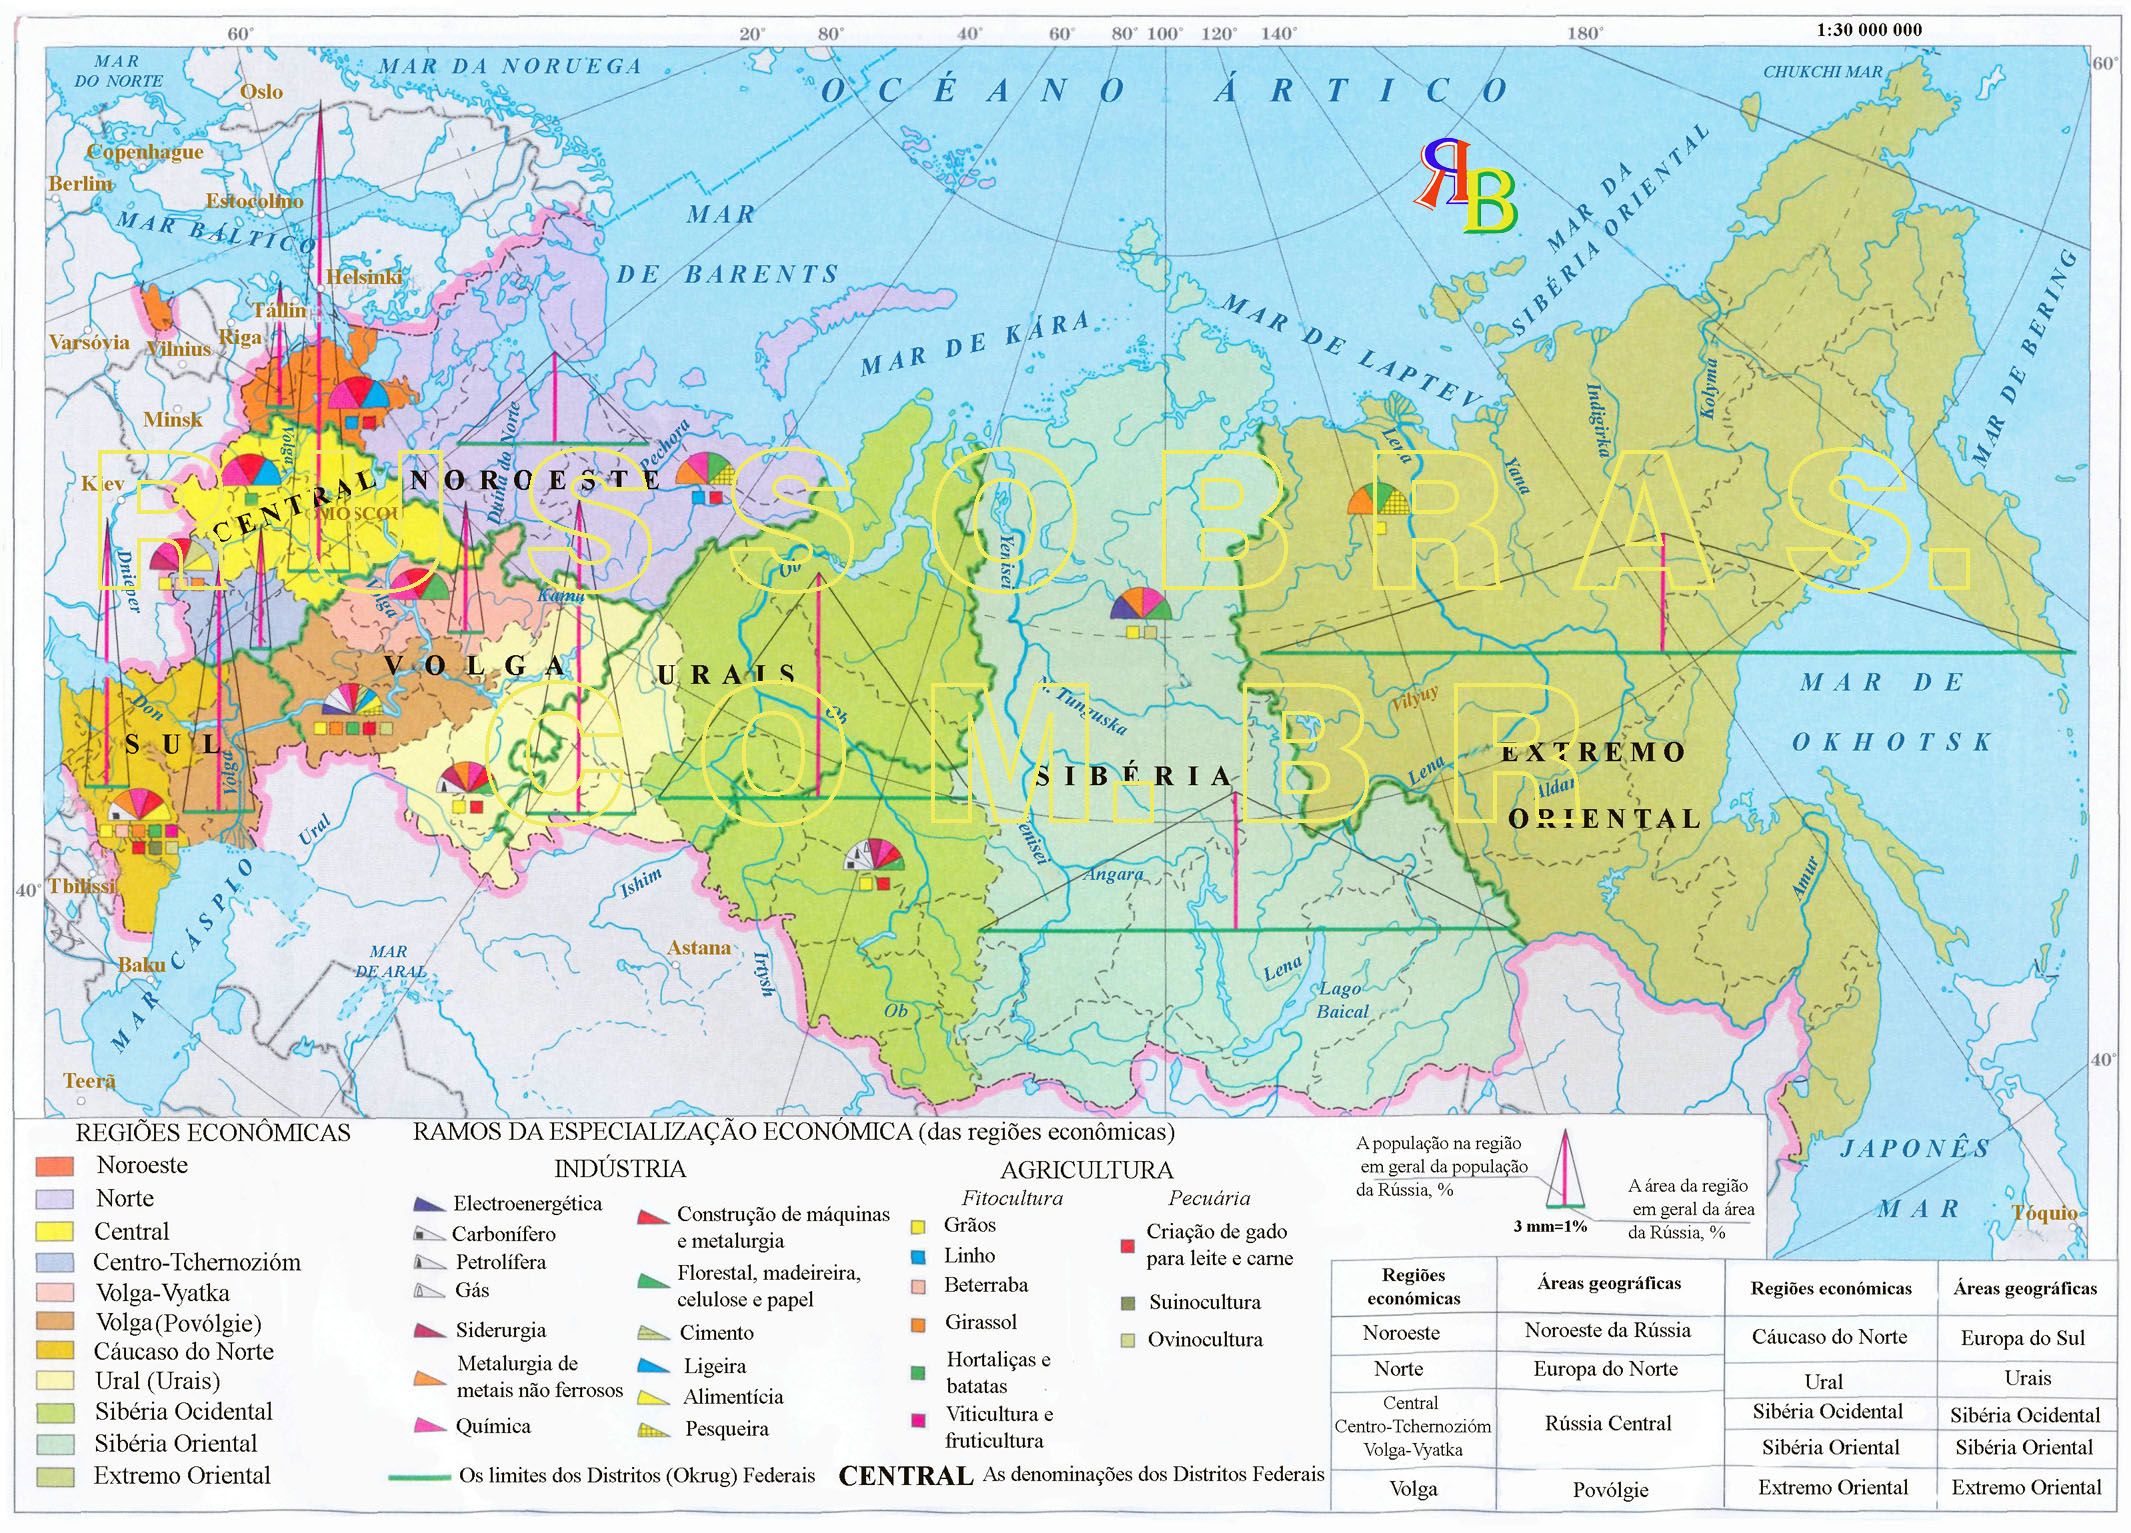 siberia map with Mapa Econr on Lake Baikal likewise Erdwissen nagra moreover MapOlkhon in addition Largest Early World Map Monte S 10 Ft Planisphere Of 1587 additionally 217772.